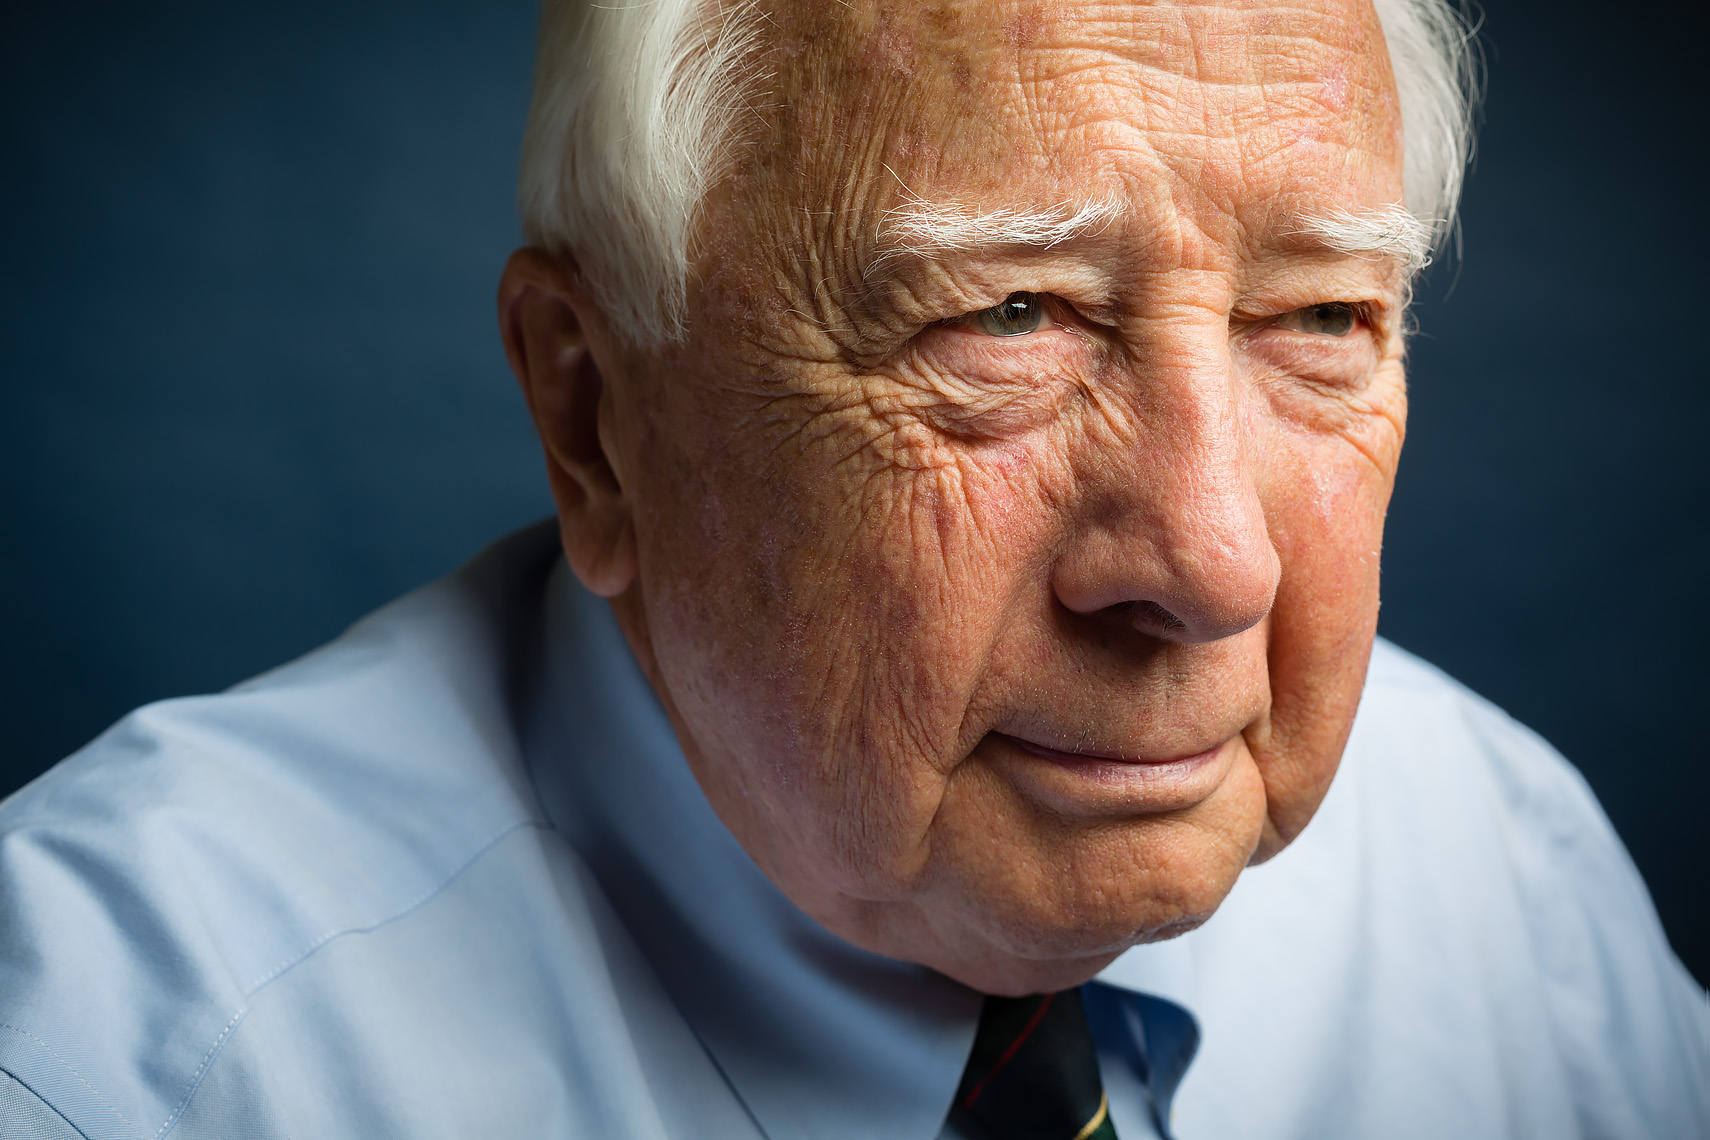 DAVID MCCULLOUGH • HISTORIAN & AUTHOR